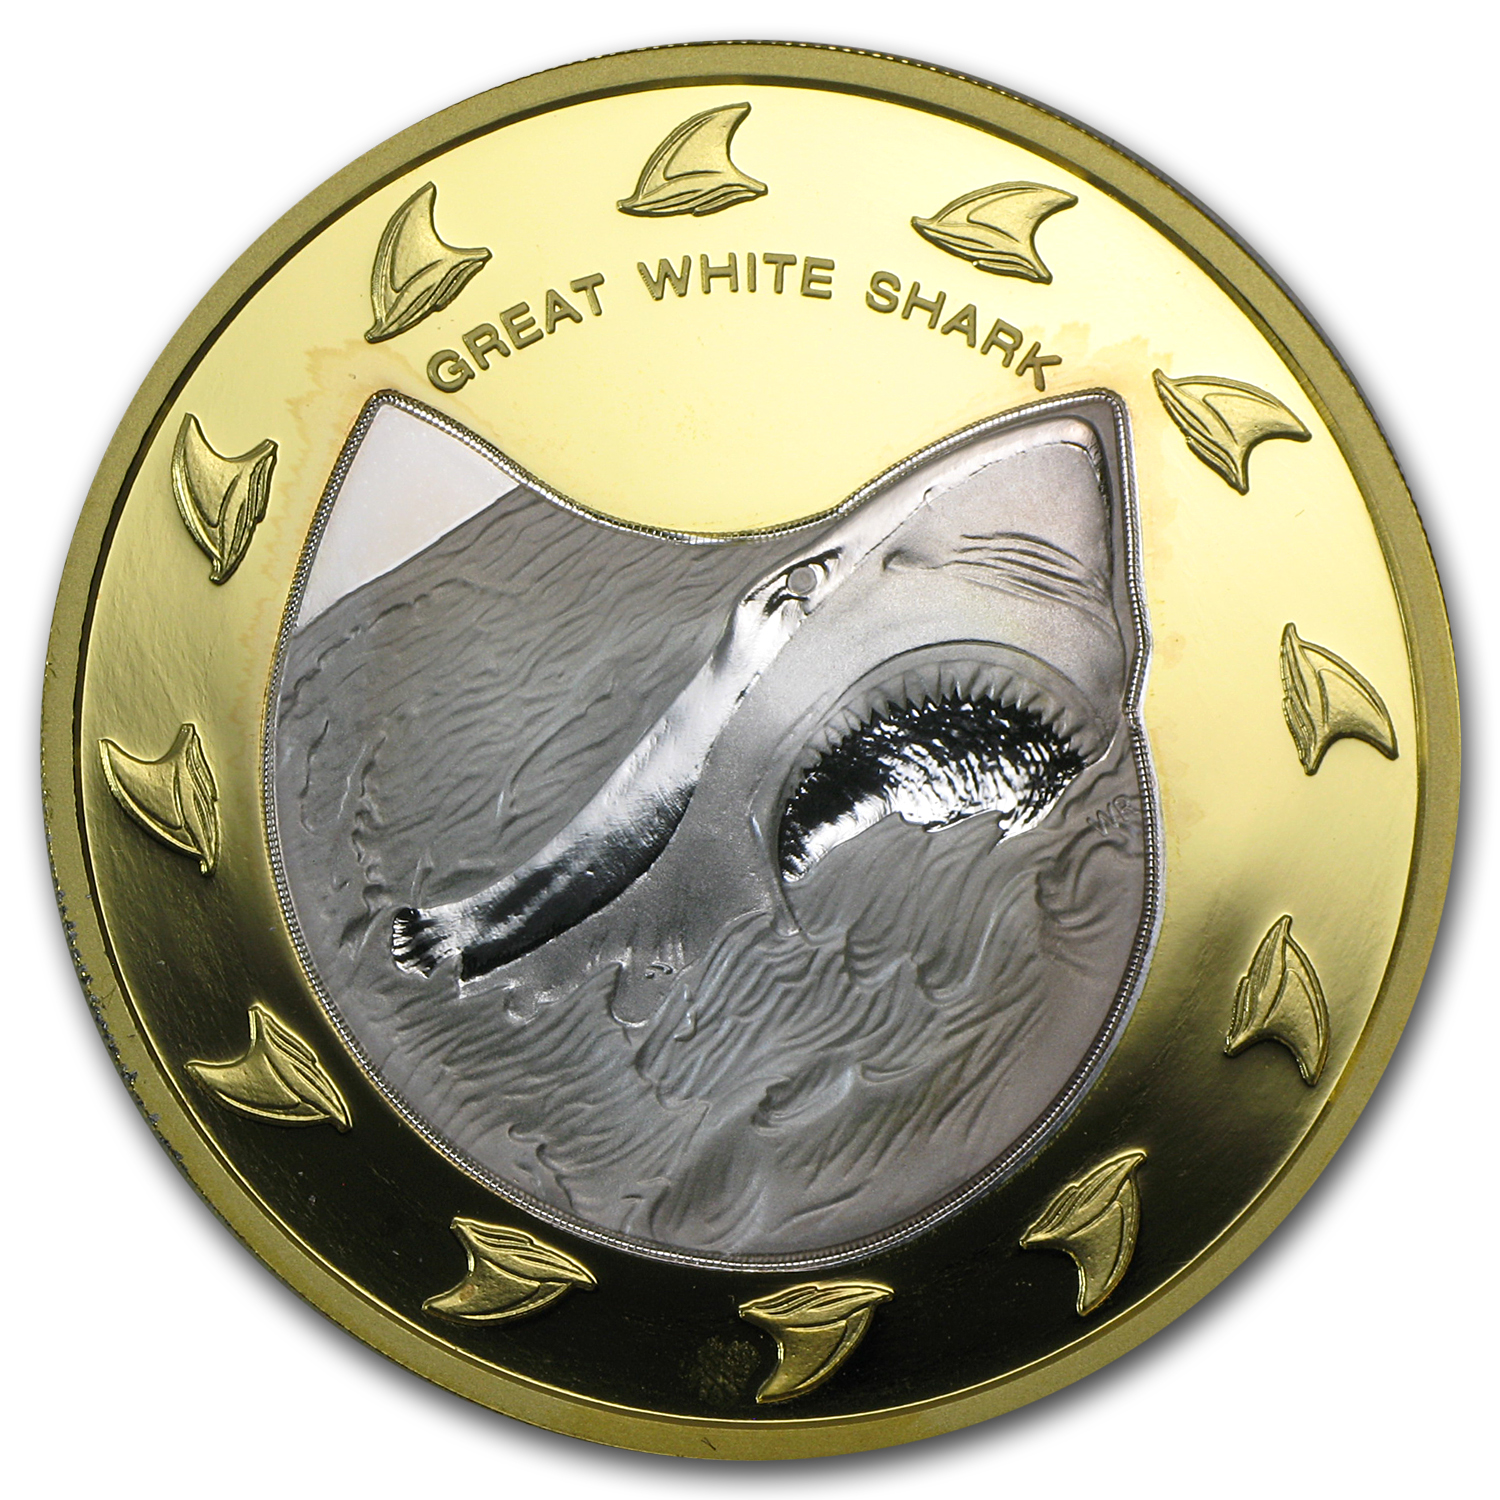 2005 Cook Islands Gold/Silver $150 Great White Shark Proof